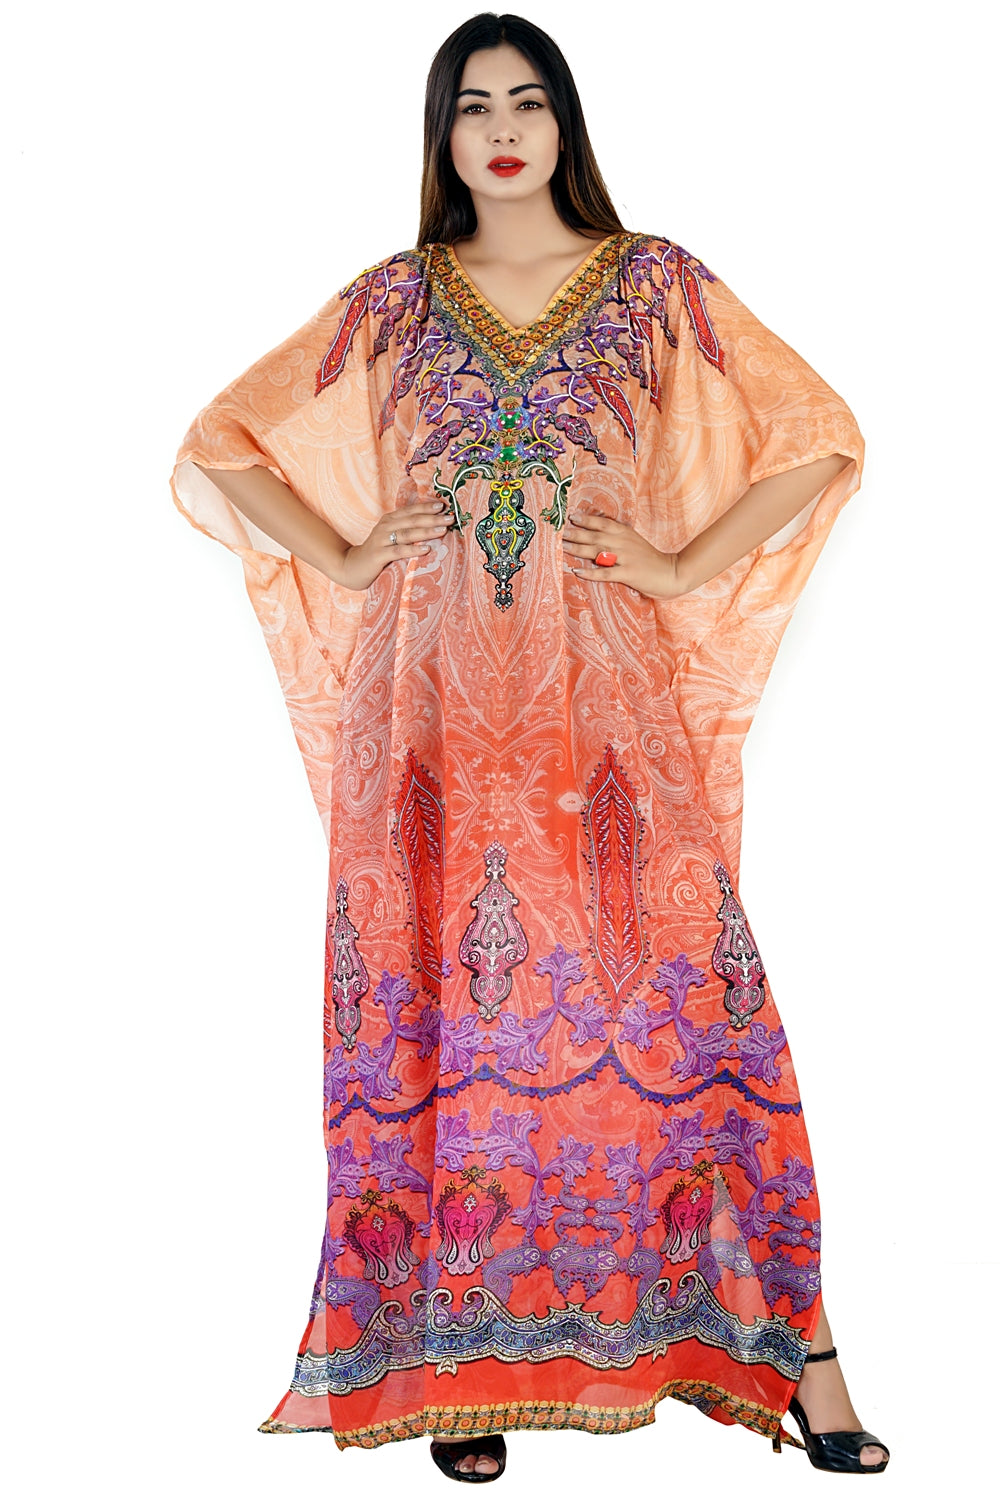 Enthralled Tribal approach Silk Kaftan of Full length amiable and fashion stunned vacation beach outfits - Silk kaftan